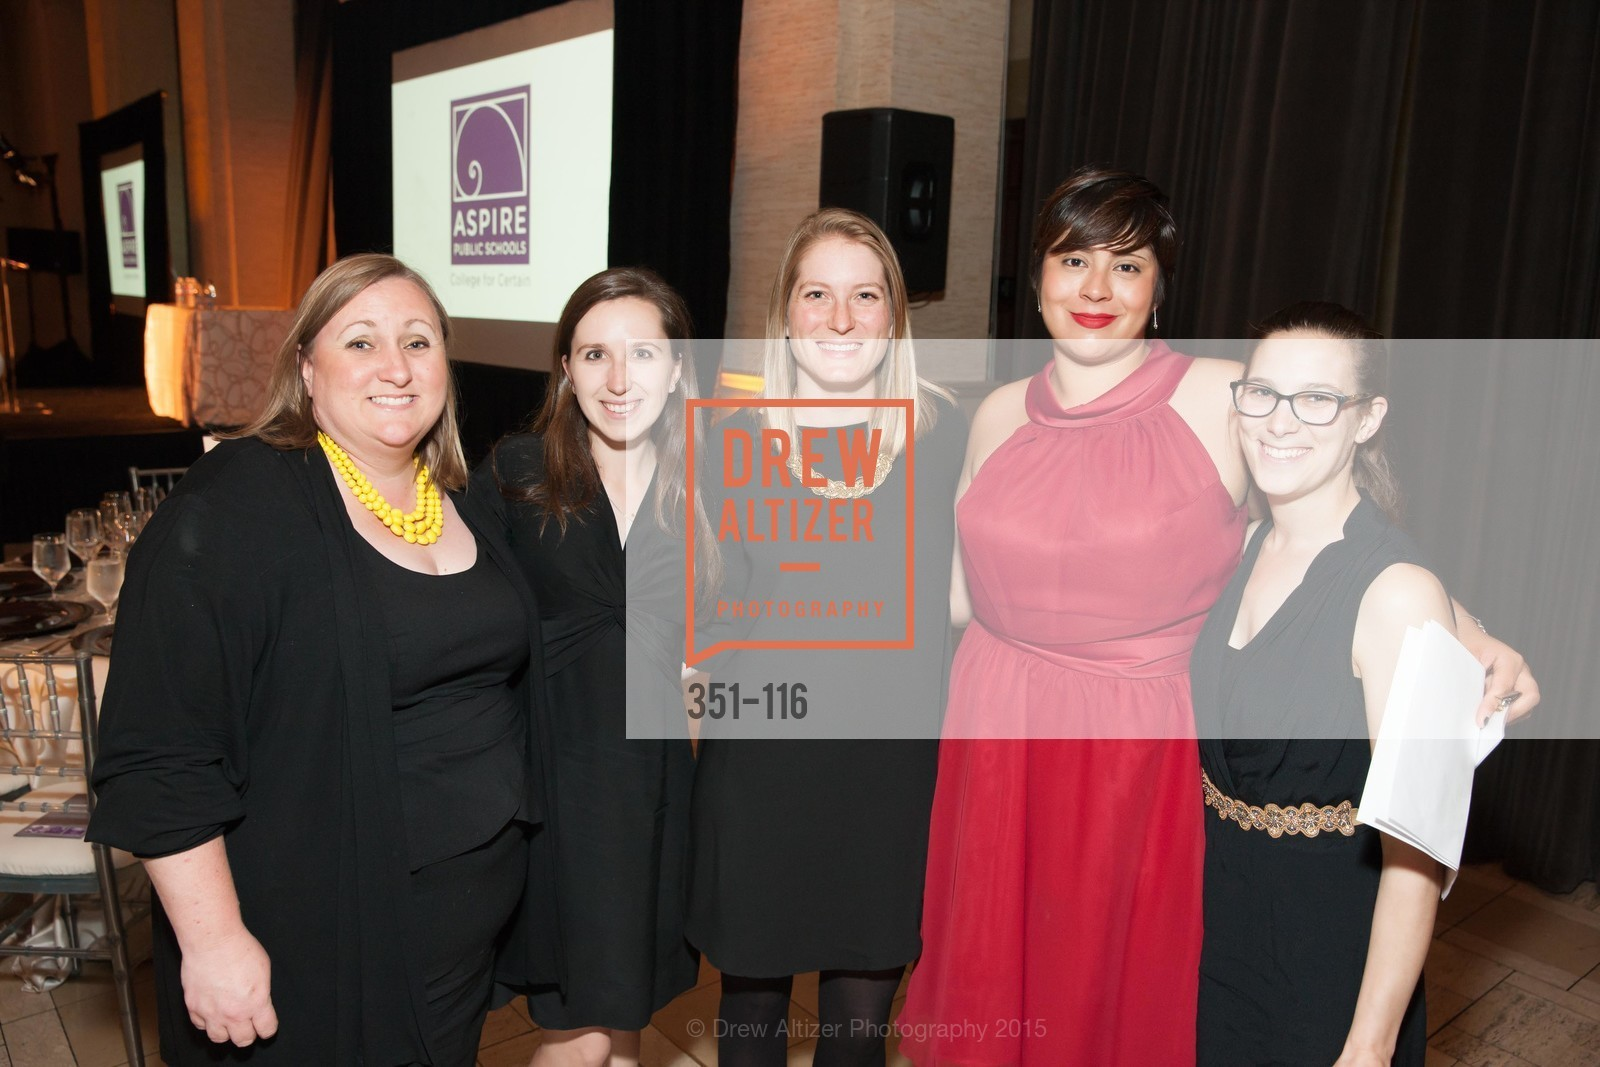 Sharon Johnson, Kate Barber, Devon Brown, Bianka Mariscal, Hanna Carla Newman, Aspire Public Schools 2nd Annual Gala, Bently Reserve, May 20th, 2015,Drew Altizer, Drew Altizer Photography, full-service agency, private events, San Francisco photographer, photographer california